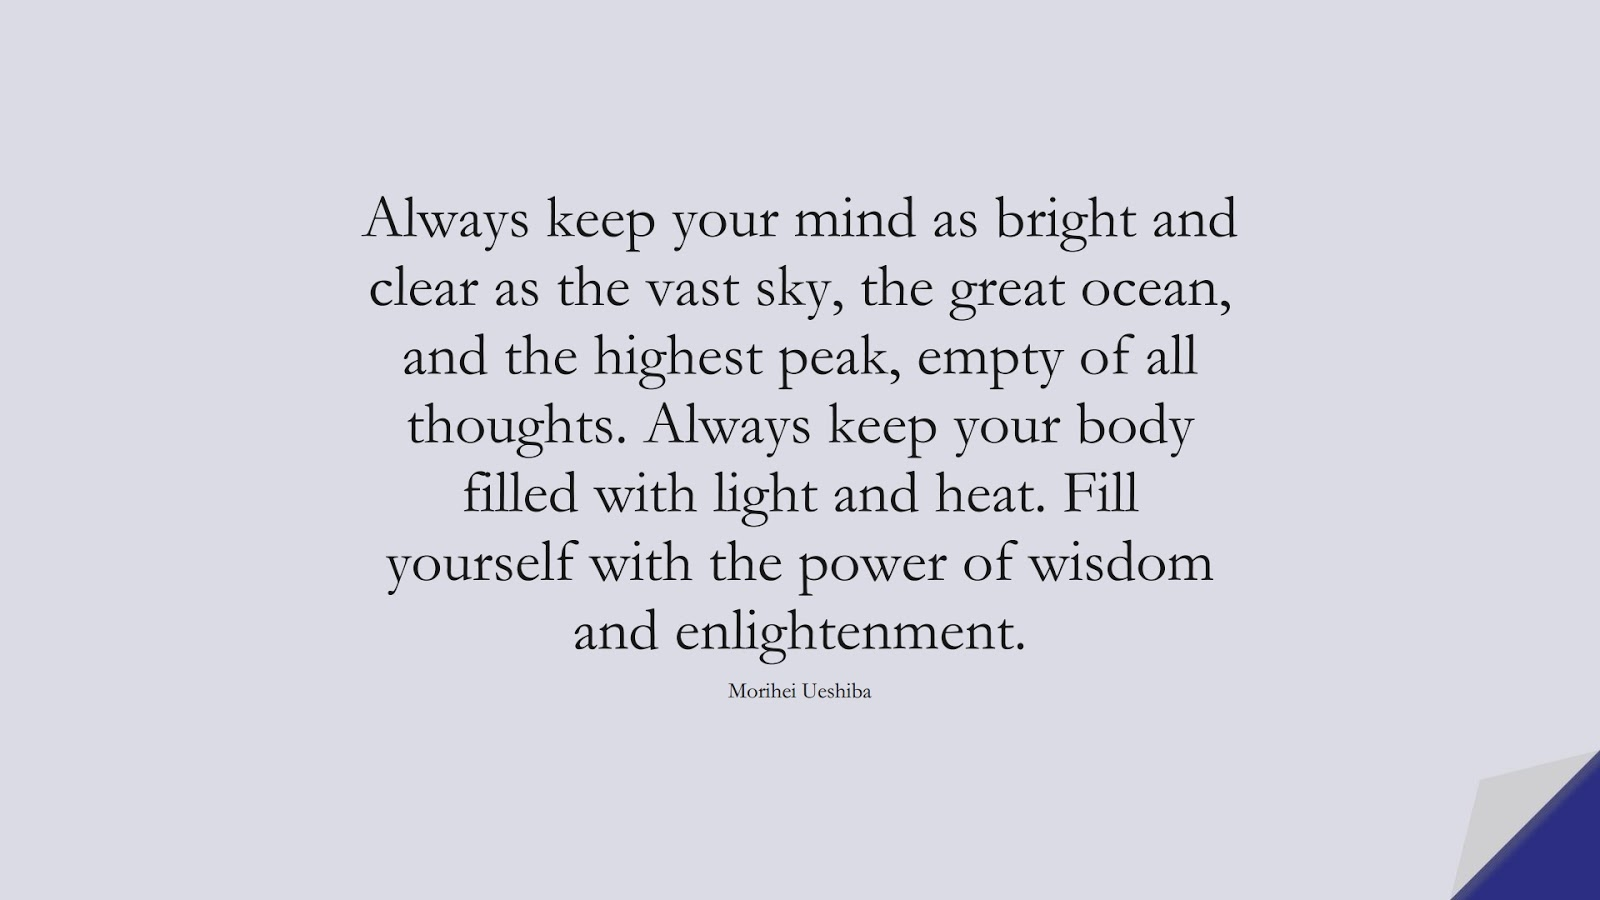 Always keep your mind as bright and clear as the vast sky, the great ocean, and the highest peak, empty of all thoughts. Always keep your body filled with light and heat. Fill yourself with the power of wisdom and enlightenment. (Morihei Ueshiba);  #WordsofWisdom